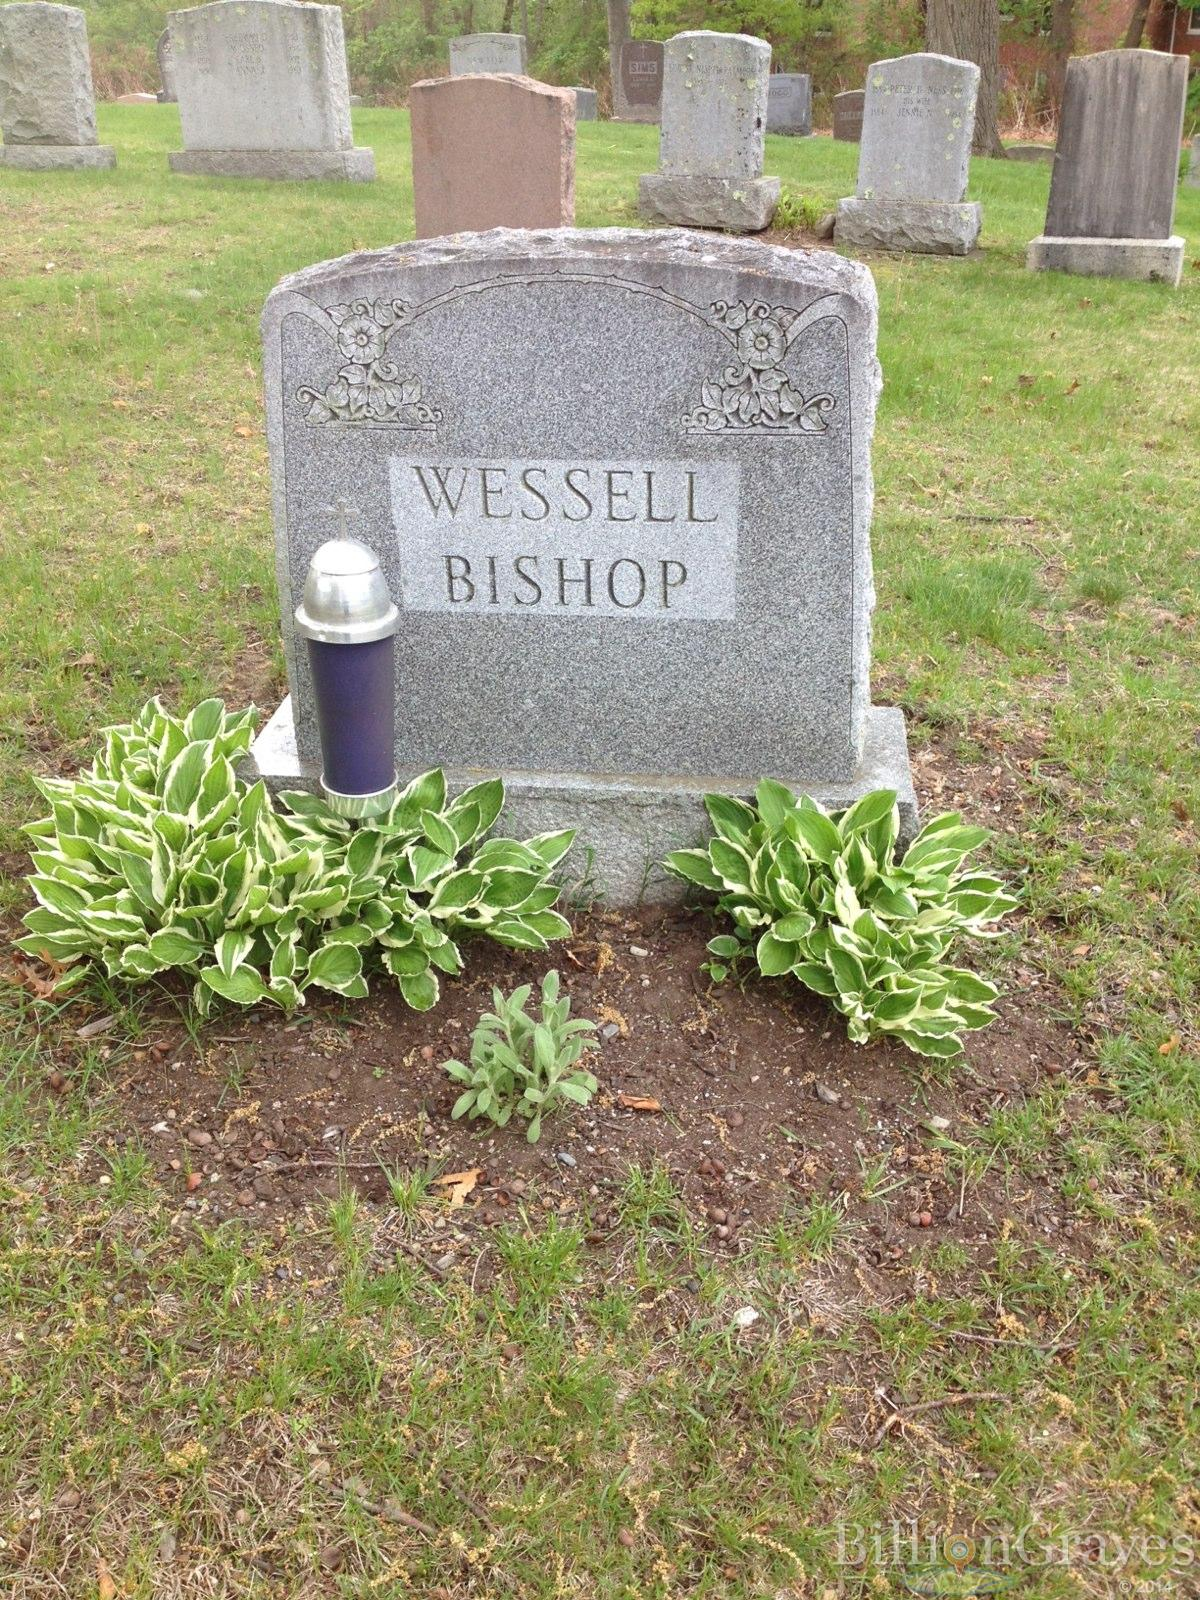 grave site of emily m wessell billiongraves headstone image of emily m wessell